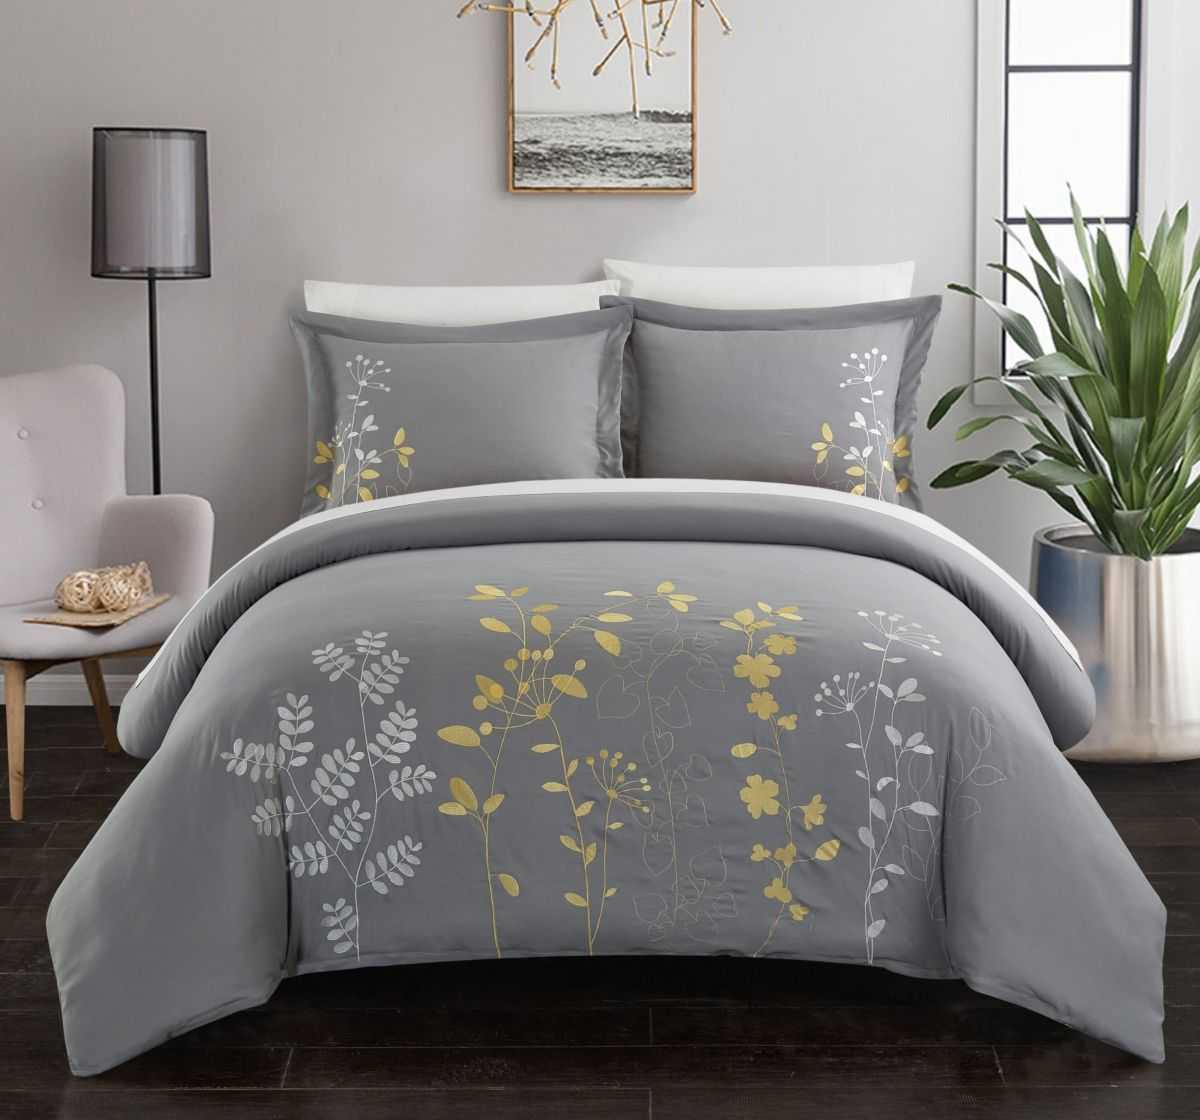 NEW BED COLLECTION 3PC EMBROIDERY DUVET COMFORTER BED COVER SET W// PILLOW SHAMS